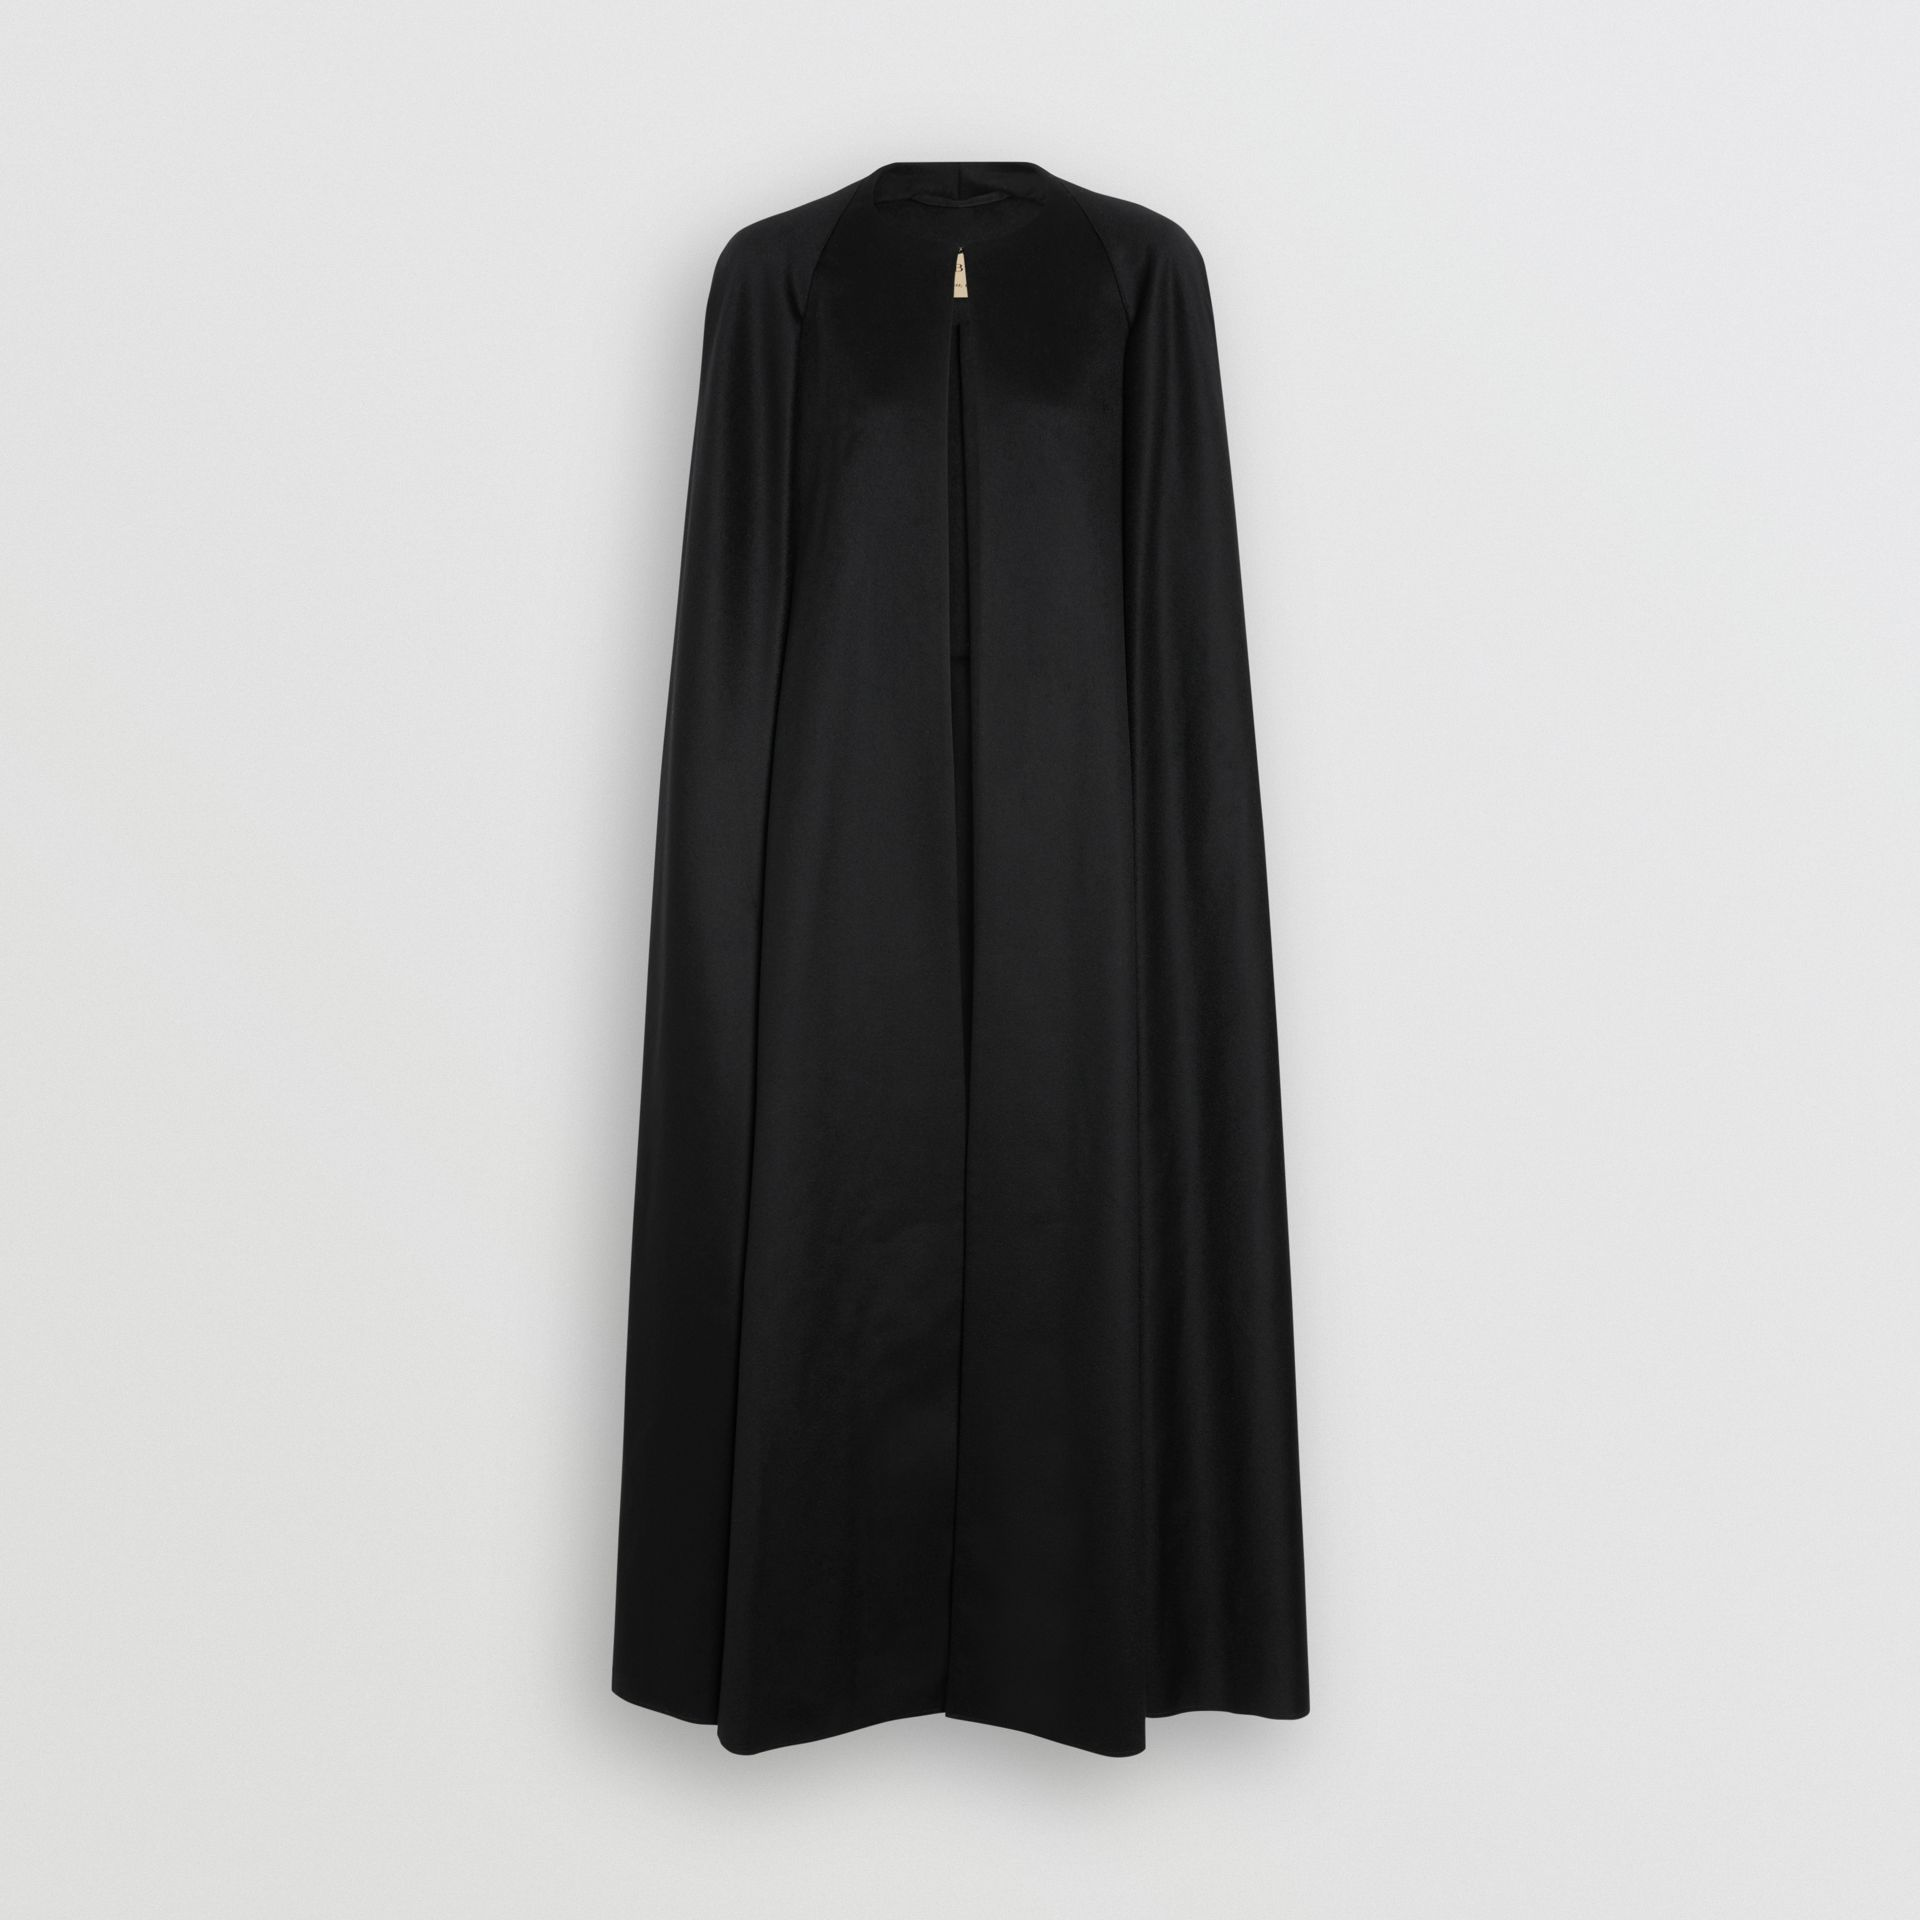 Long Doeskin Wool Cape in Black - Women | Burberry - gallery image 3